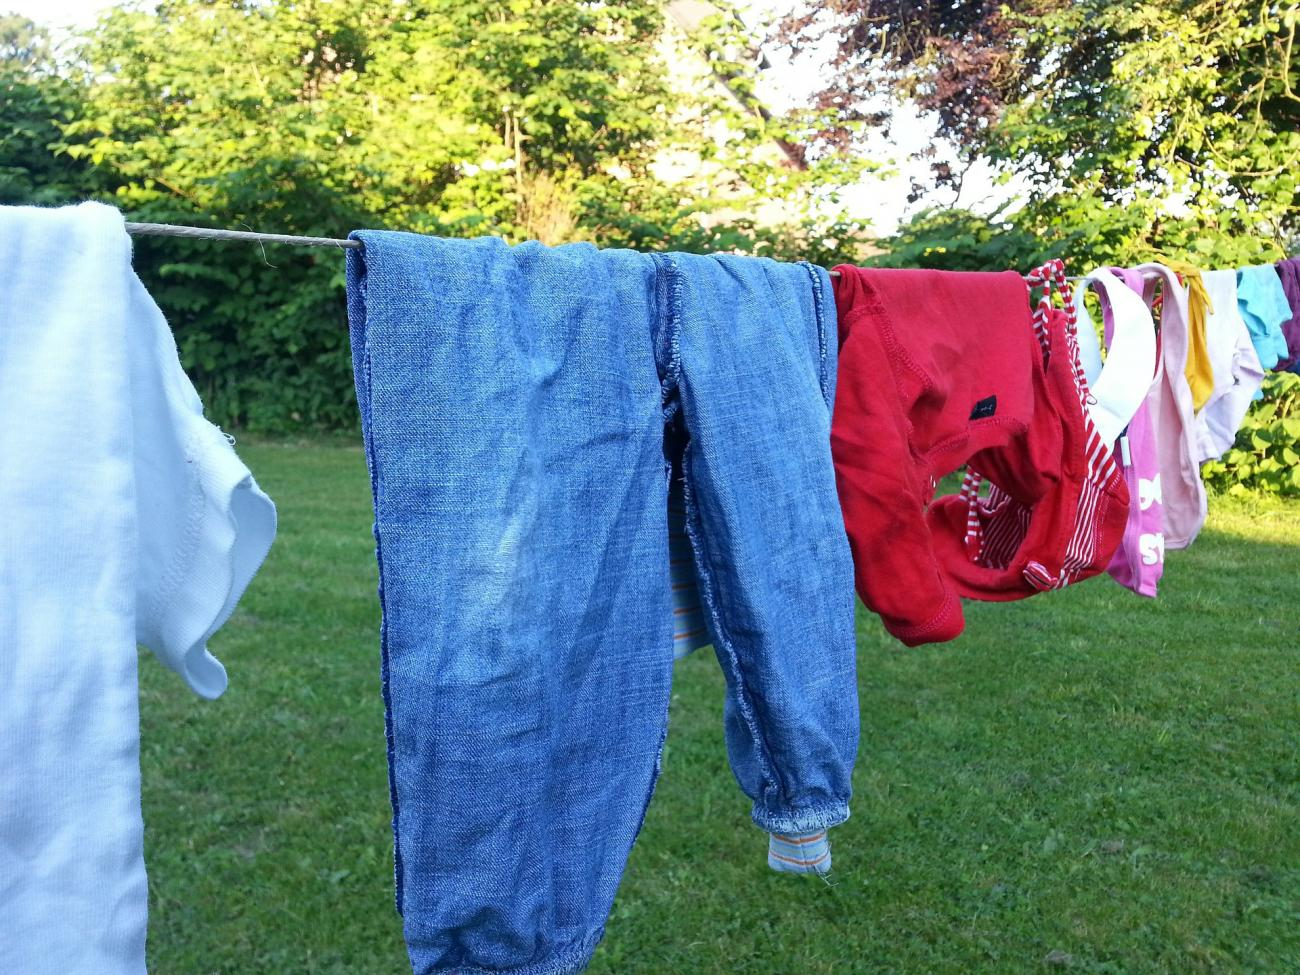 Stain Removal: How to Get Stains out of Clothes | The Old Farmer's ...